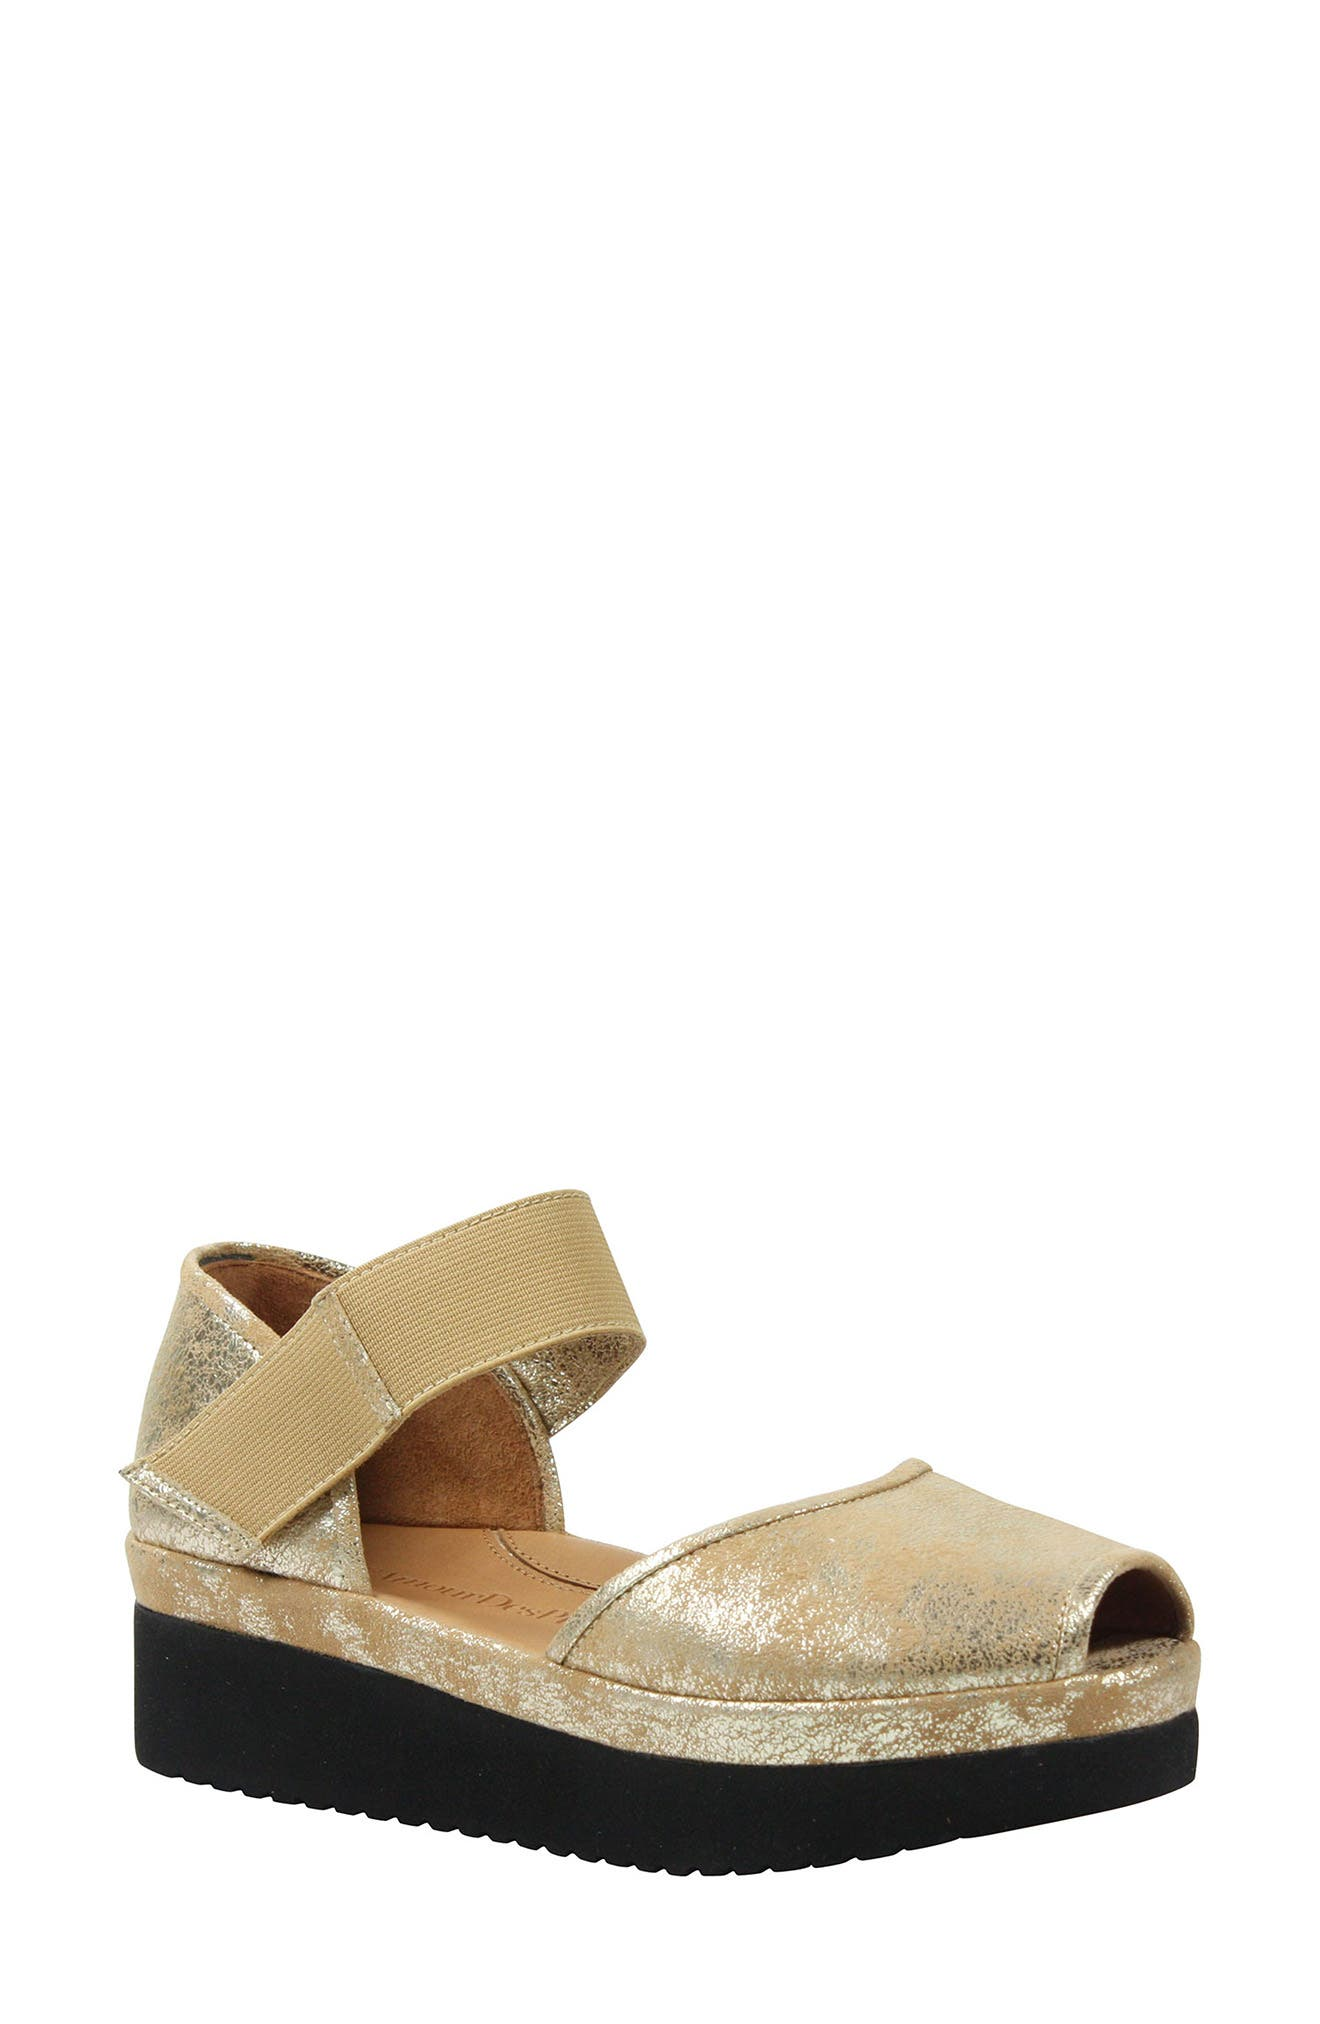 Alternate Image 1 Selected - L'Amour des Pieds 'Amadour' Platform Sandal (Women)